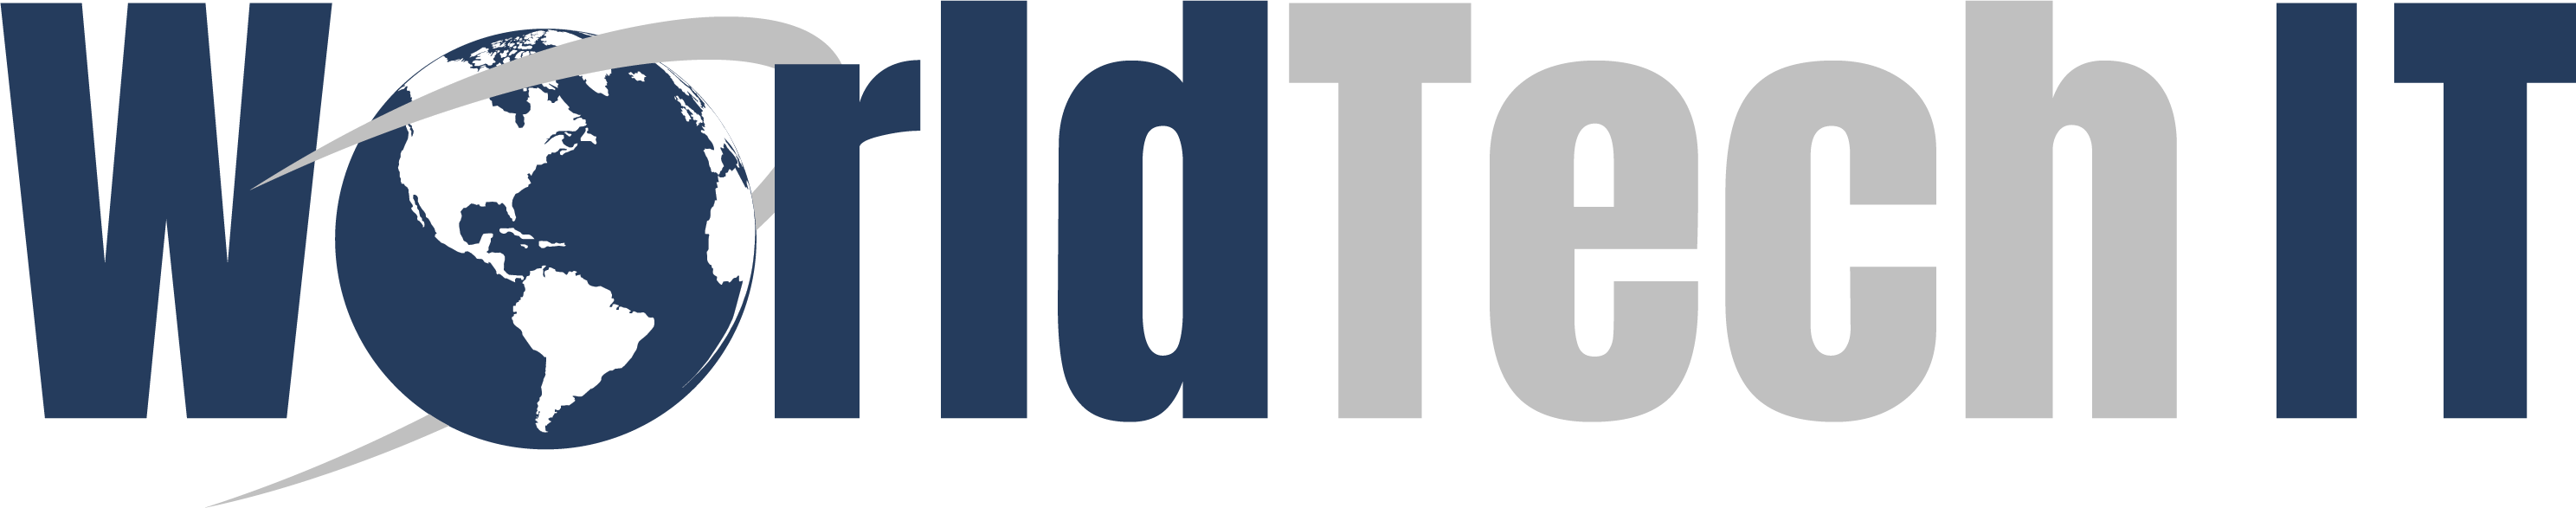 WorldTech IT logo